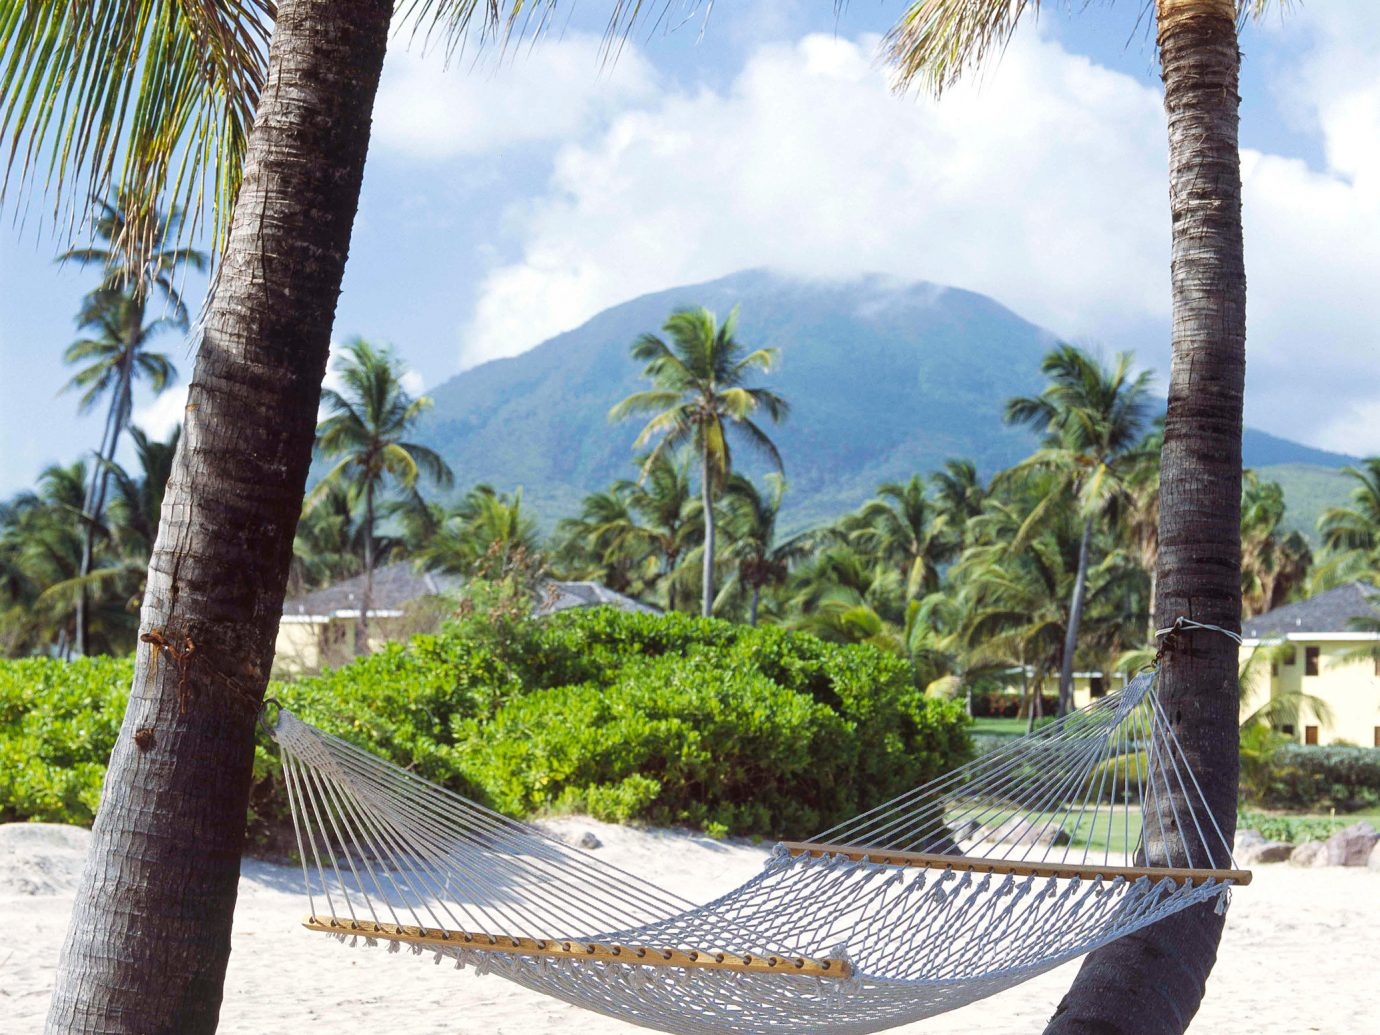 Grounds Hotels Islands Luxury Luxury Travel Mountains Scenic views Trip Ideas Tropical tree outdoor sky ground Beach vacation palm hammock arecales tropics palm family plant Resort walkway Sea caribbean trunk